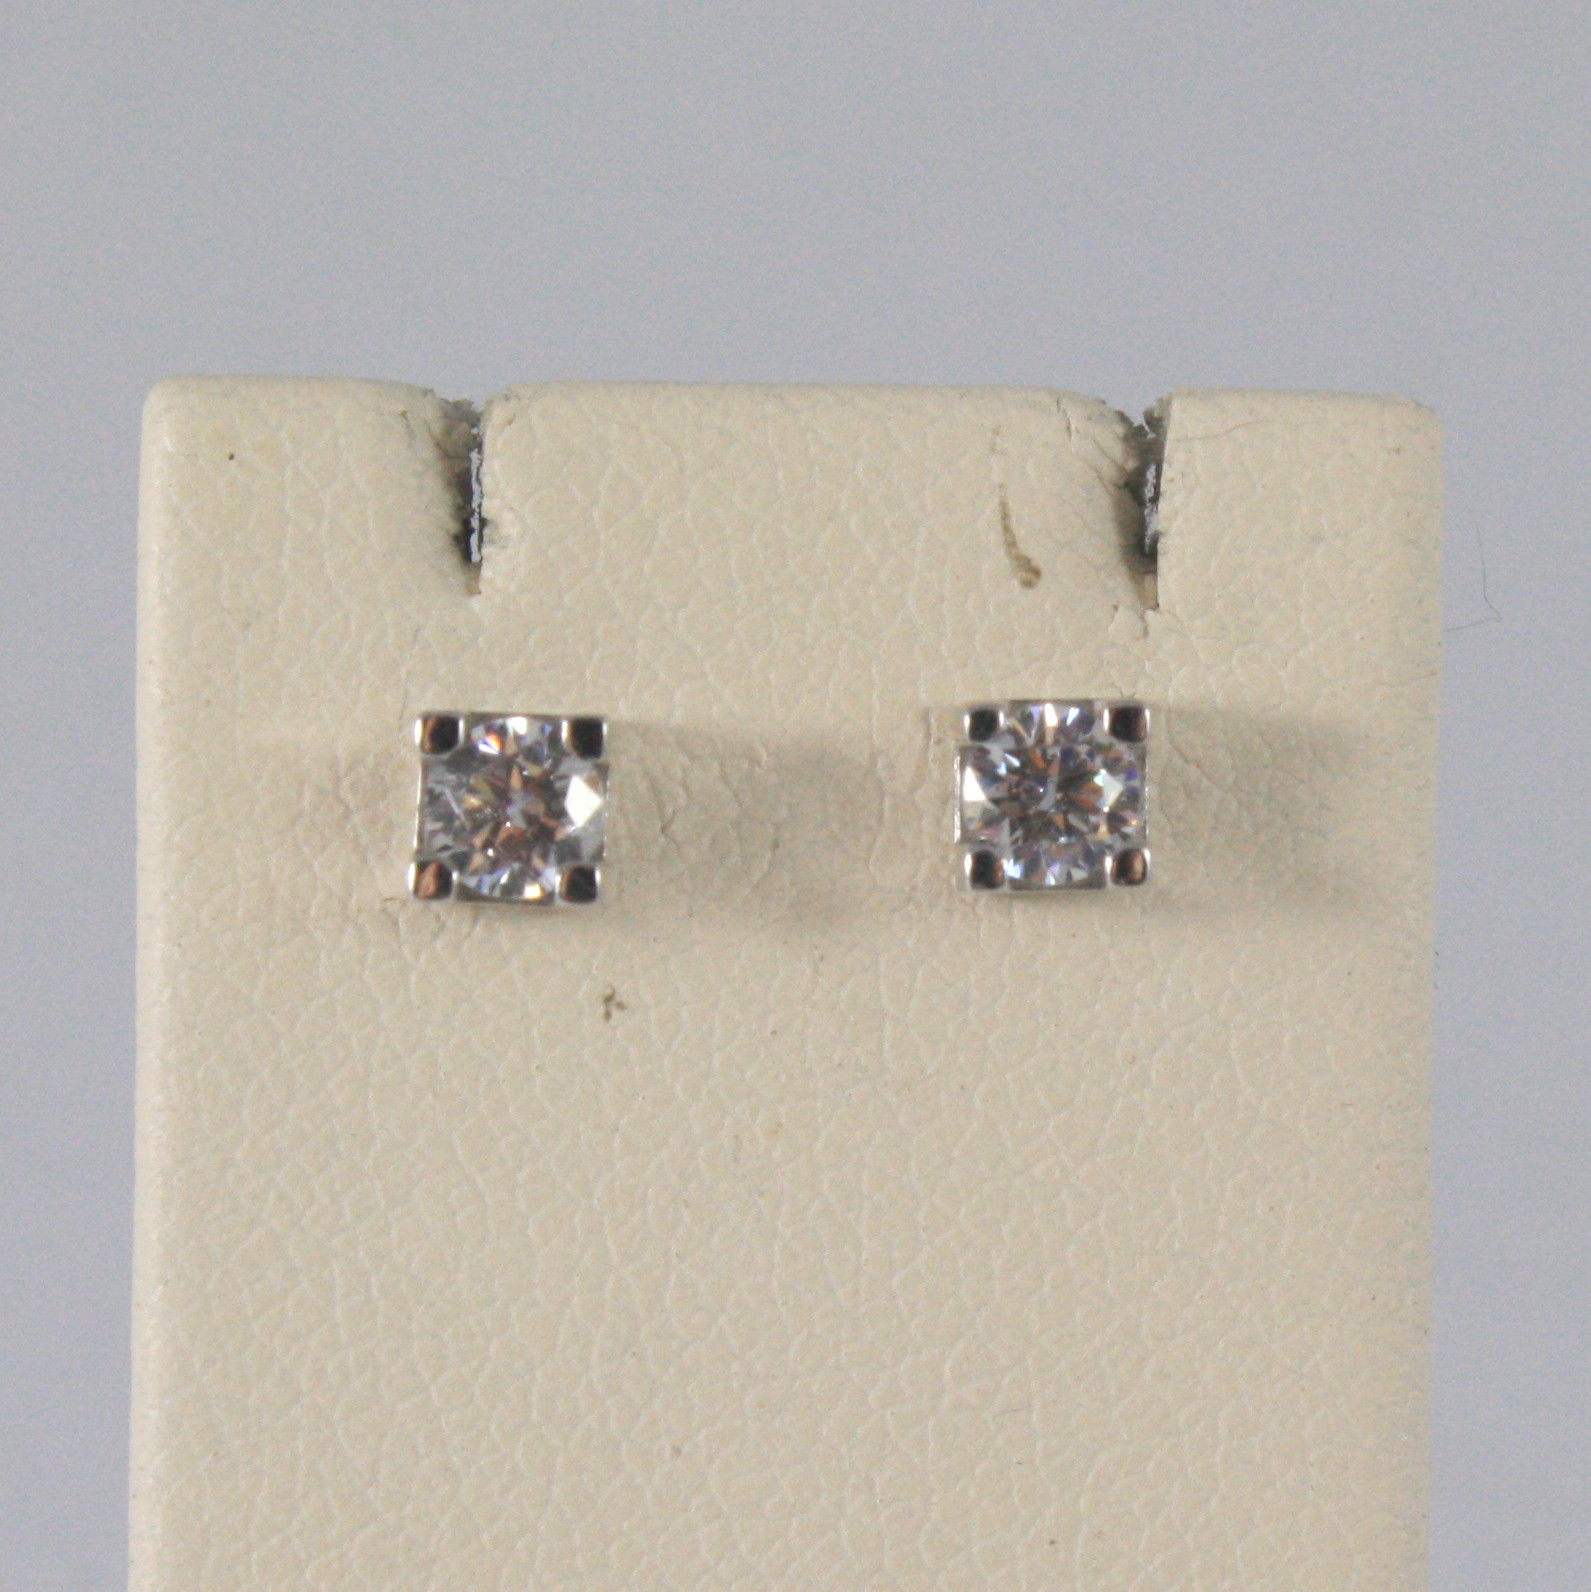 SOLID 18K WHITE GOLD EARRINGS WITH ZIRCONIA WIDTH 0,12 INCHES, MADE IN ITALY